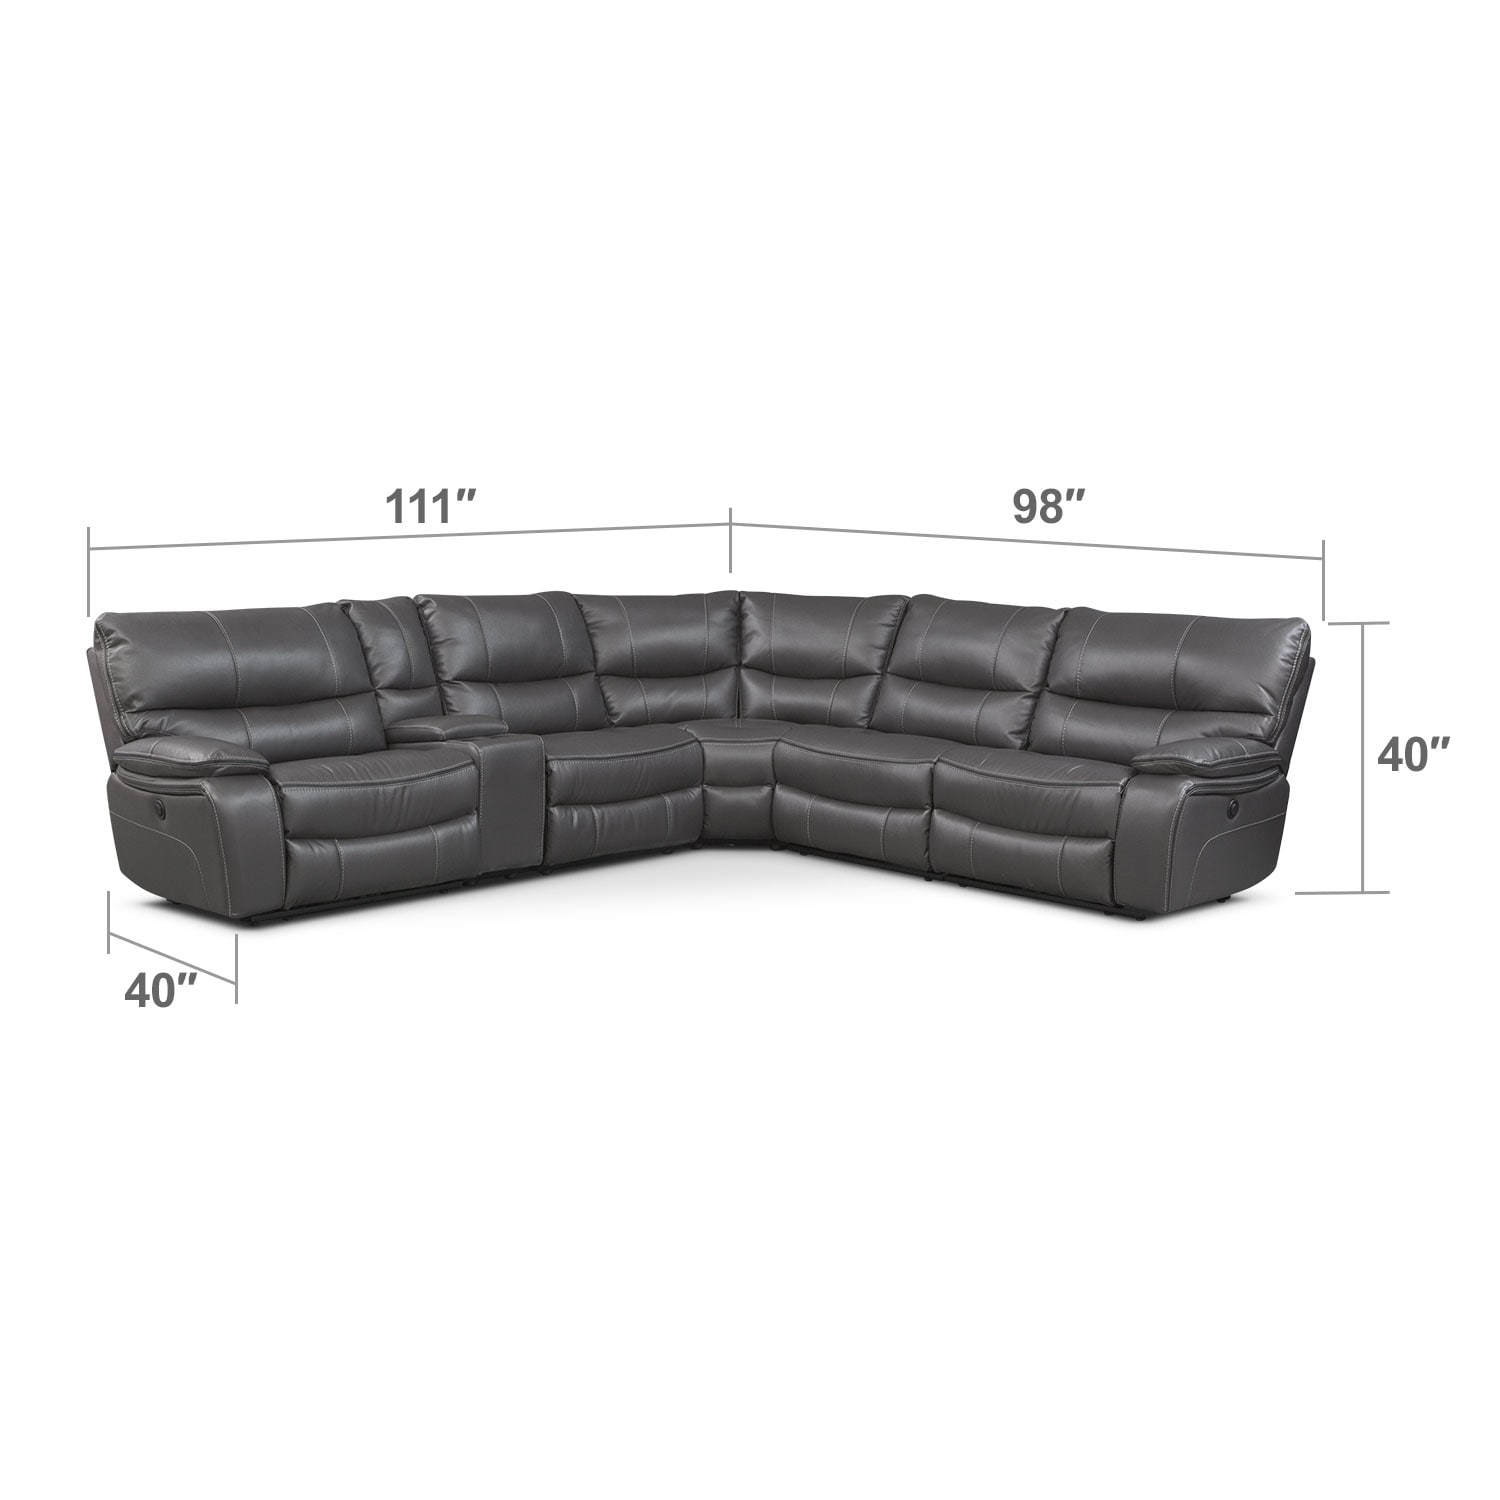 Living Room Furniture - Orlando 6-Piece Power Reclining Sectional w/ 2 Stationary Chairs - Gray